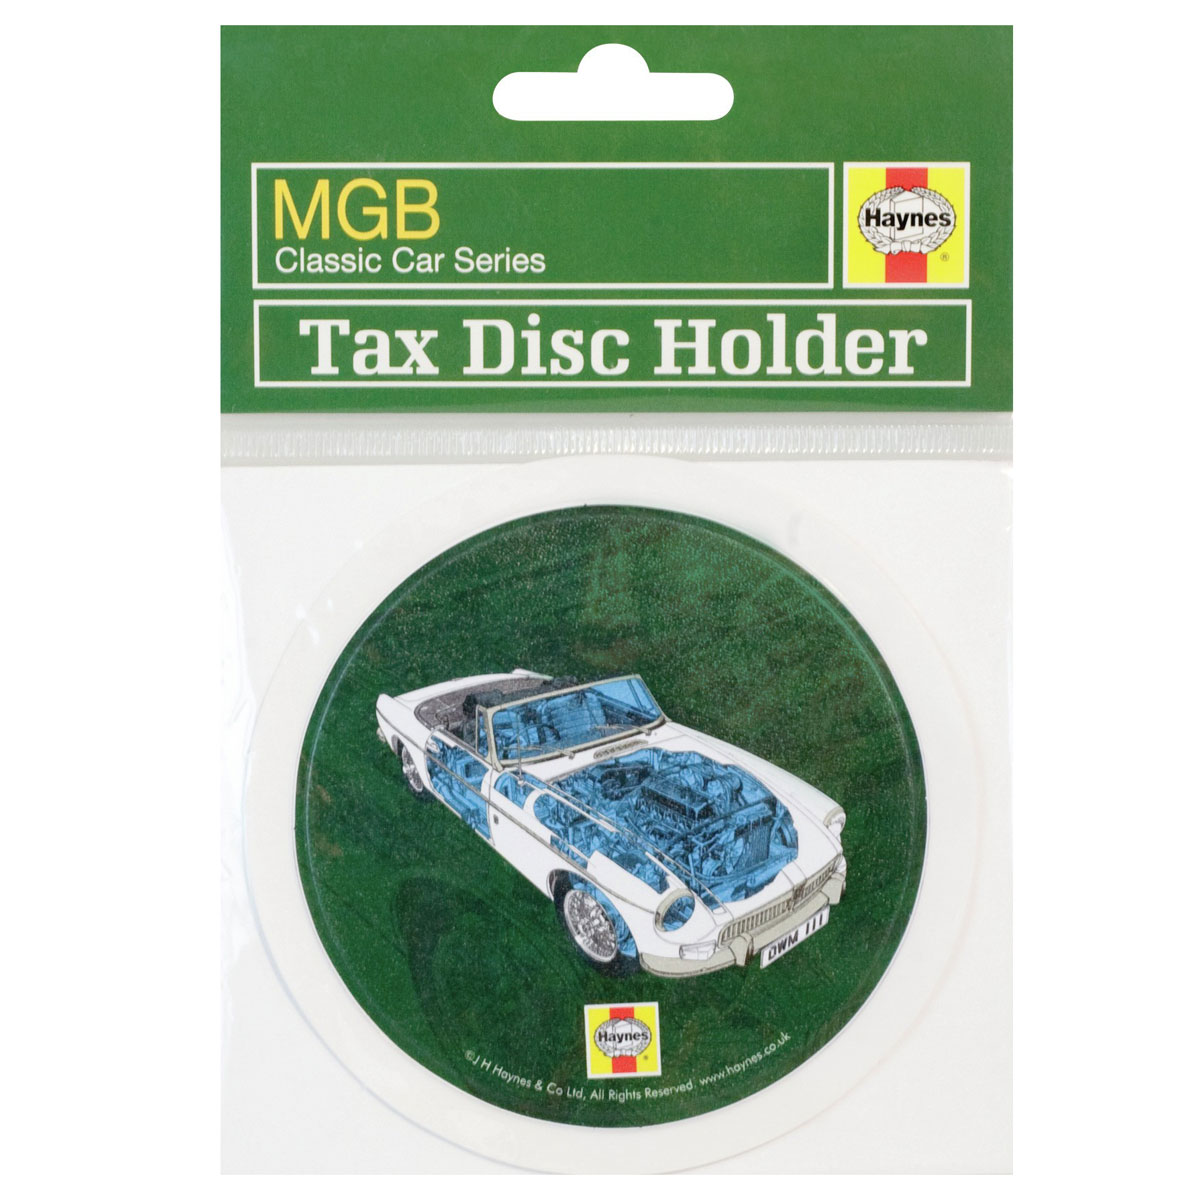 Haynes Classic Car Series Tax Disc Holder - MGB - Retro Enlarged Preview